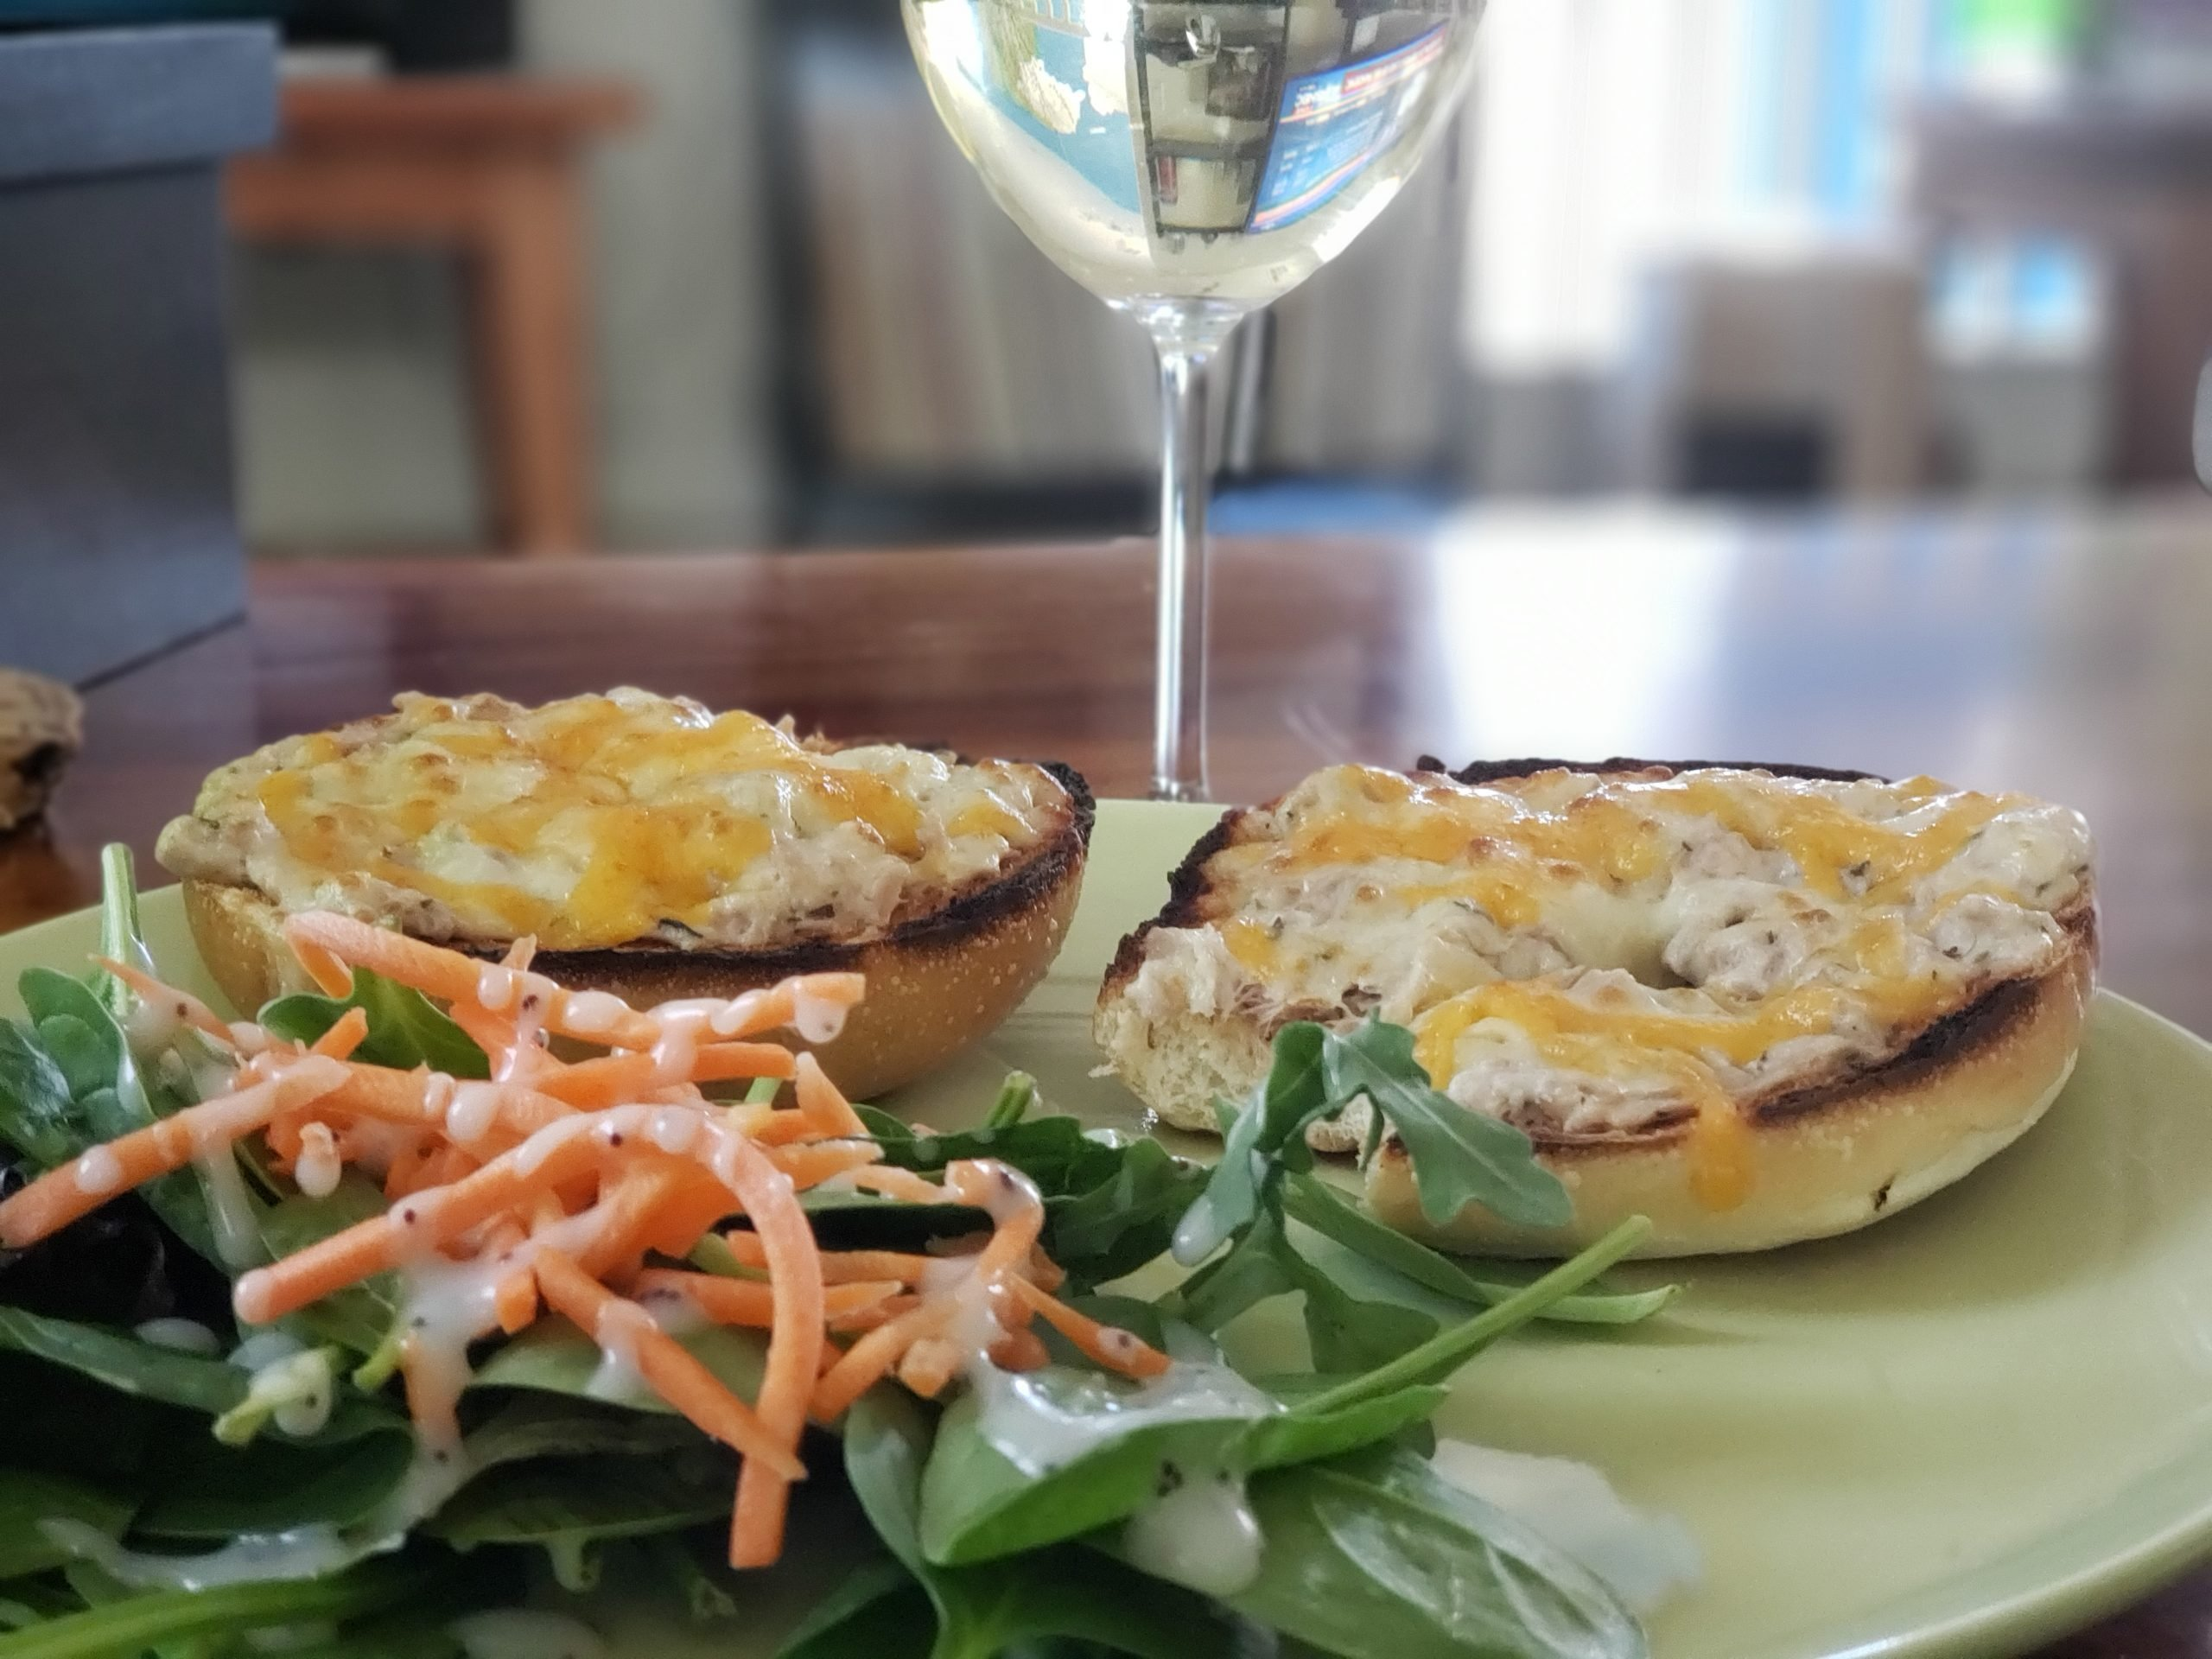 Tuna melts and a salad with a sav blanc #pantrypairings #travelinabottle